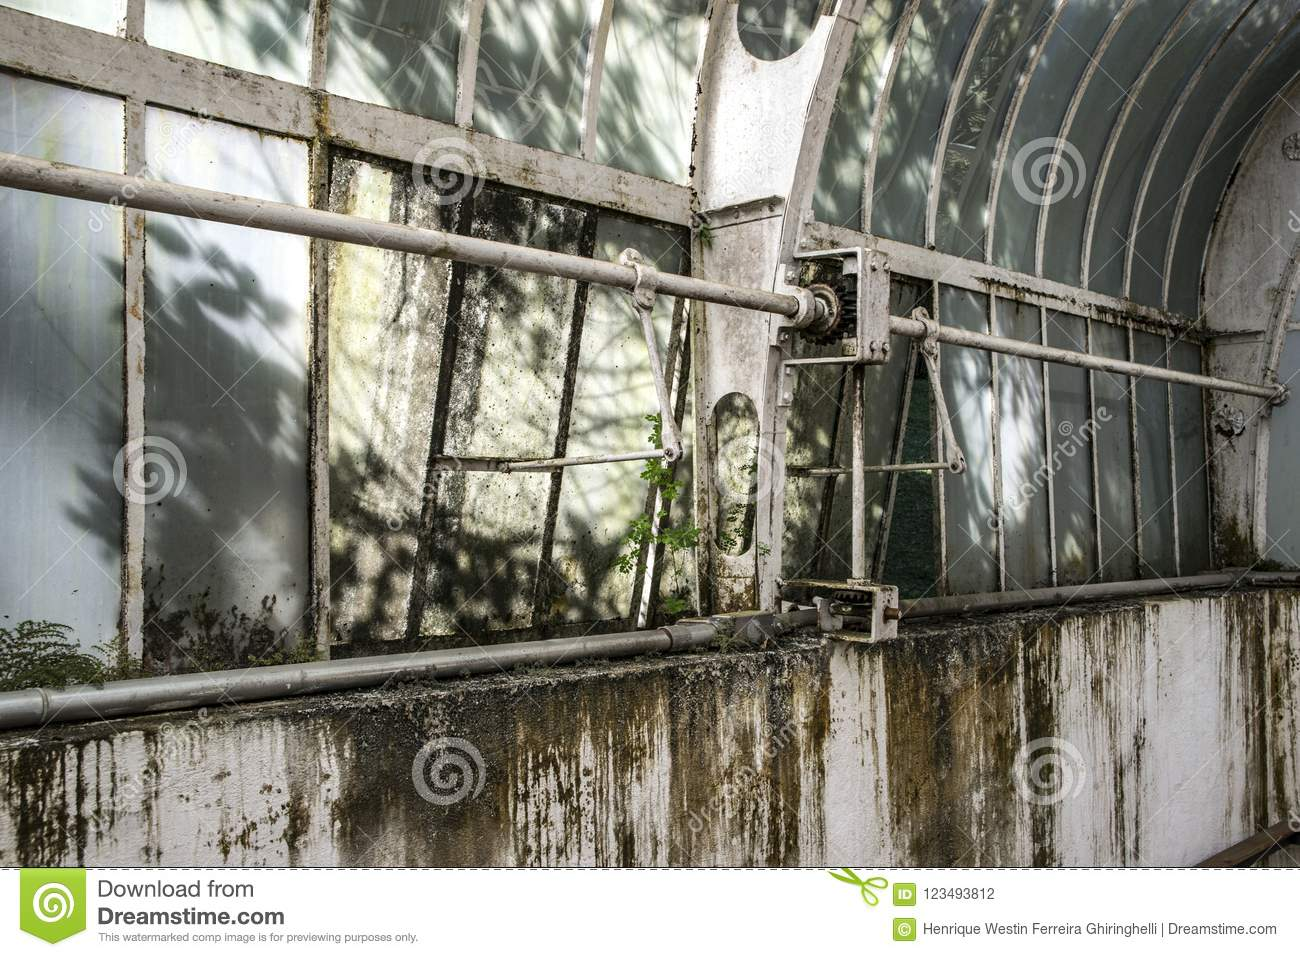 Abandoned story house inside view, ruins of industrial factory